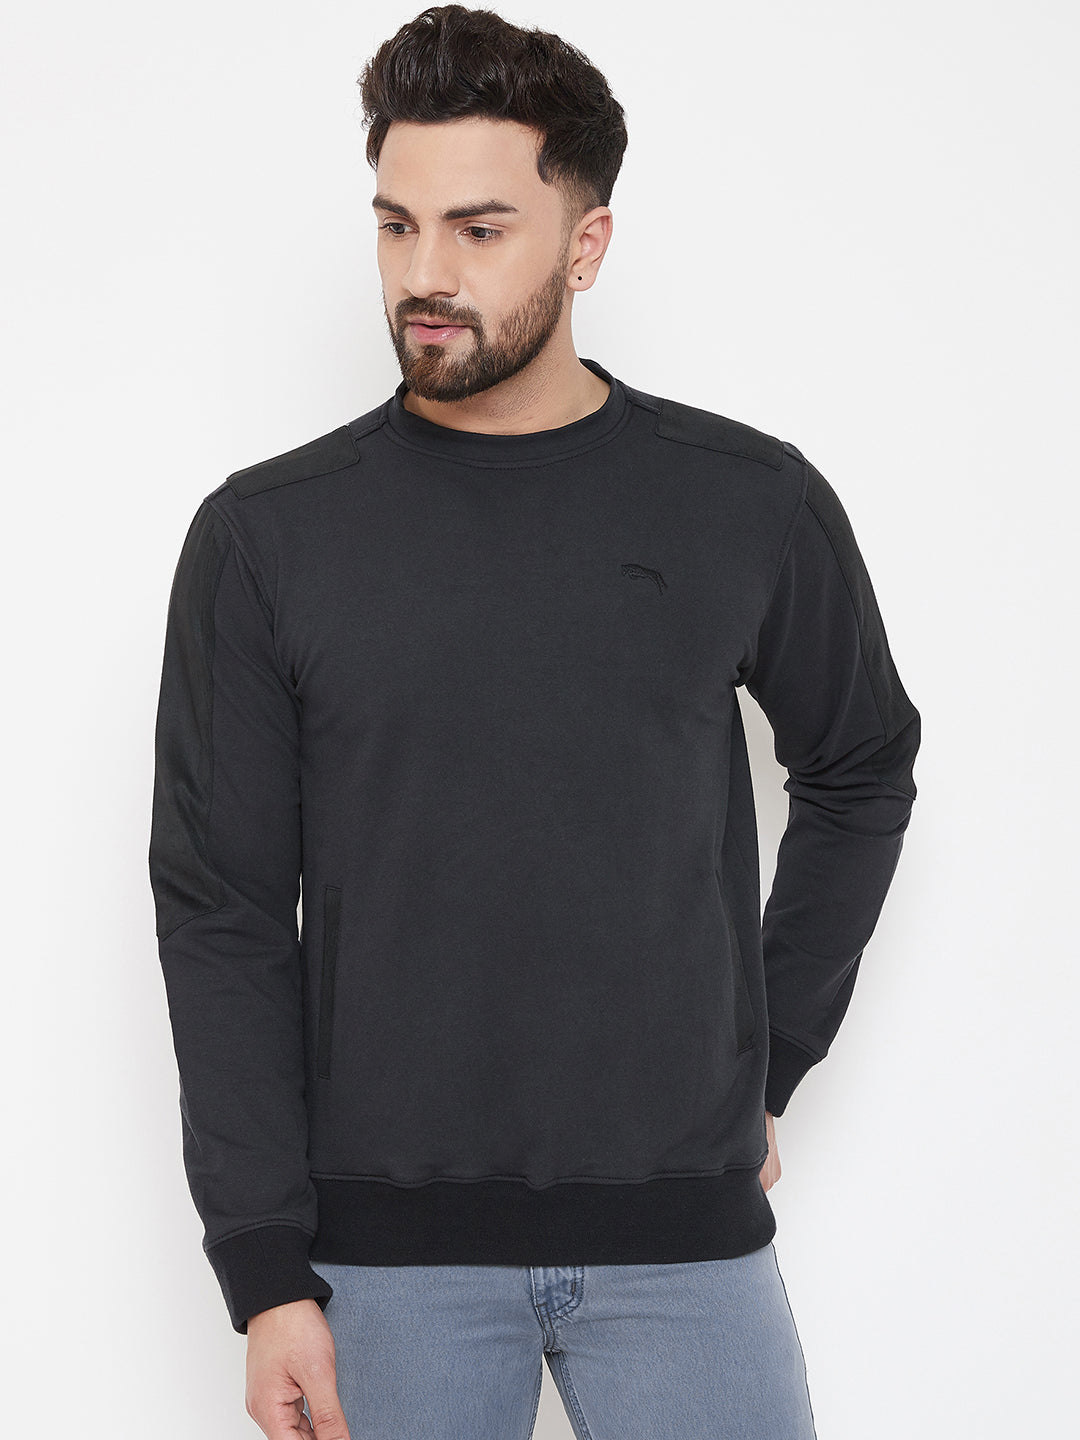 JUMP USA Men Black Solid Pullover Sweatshirt